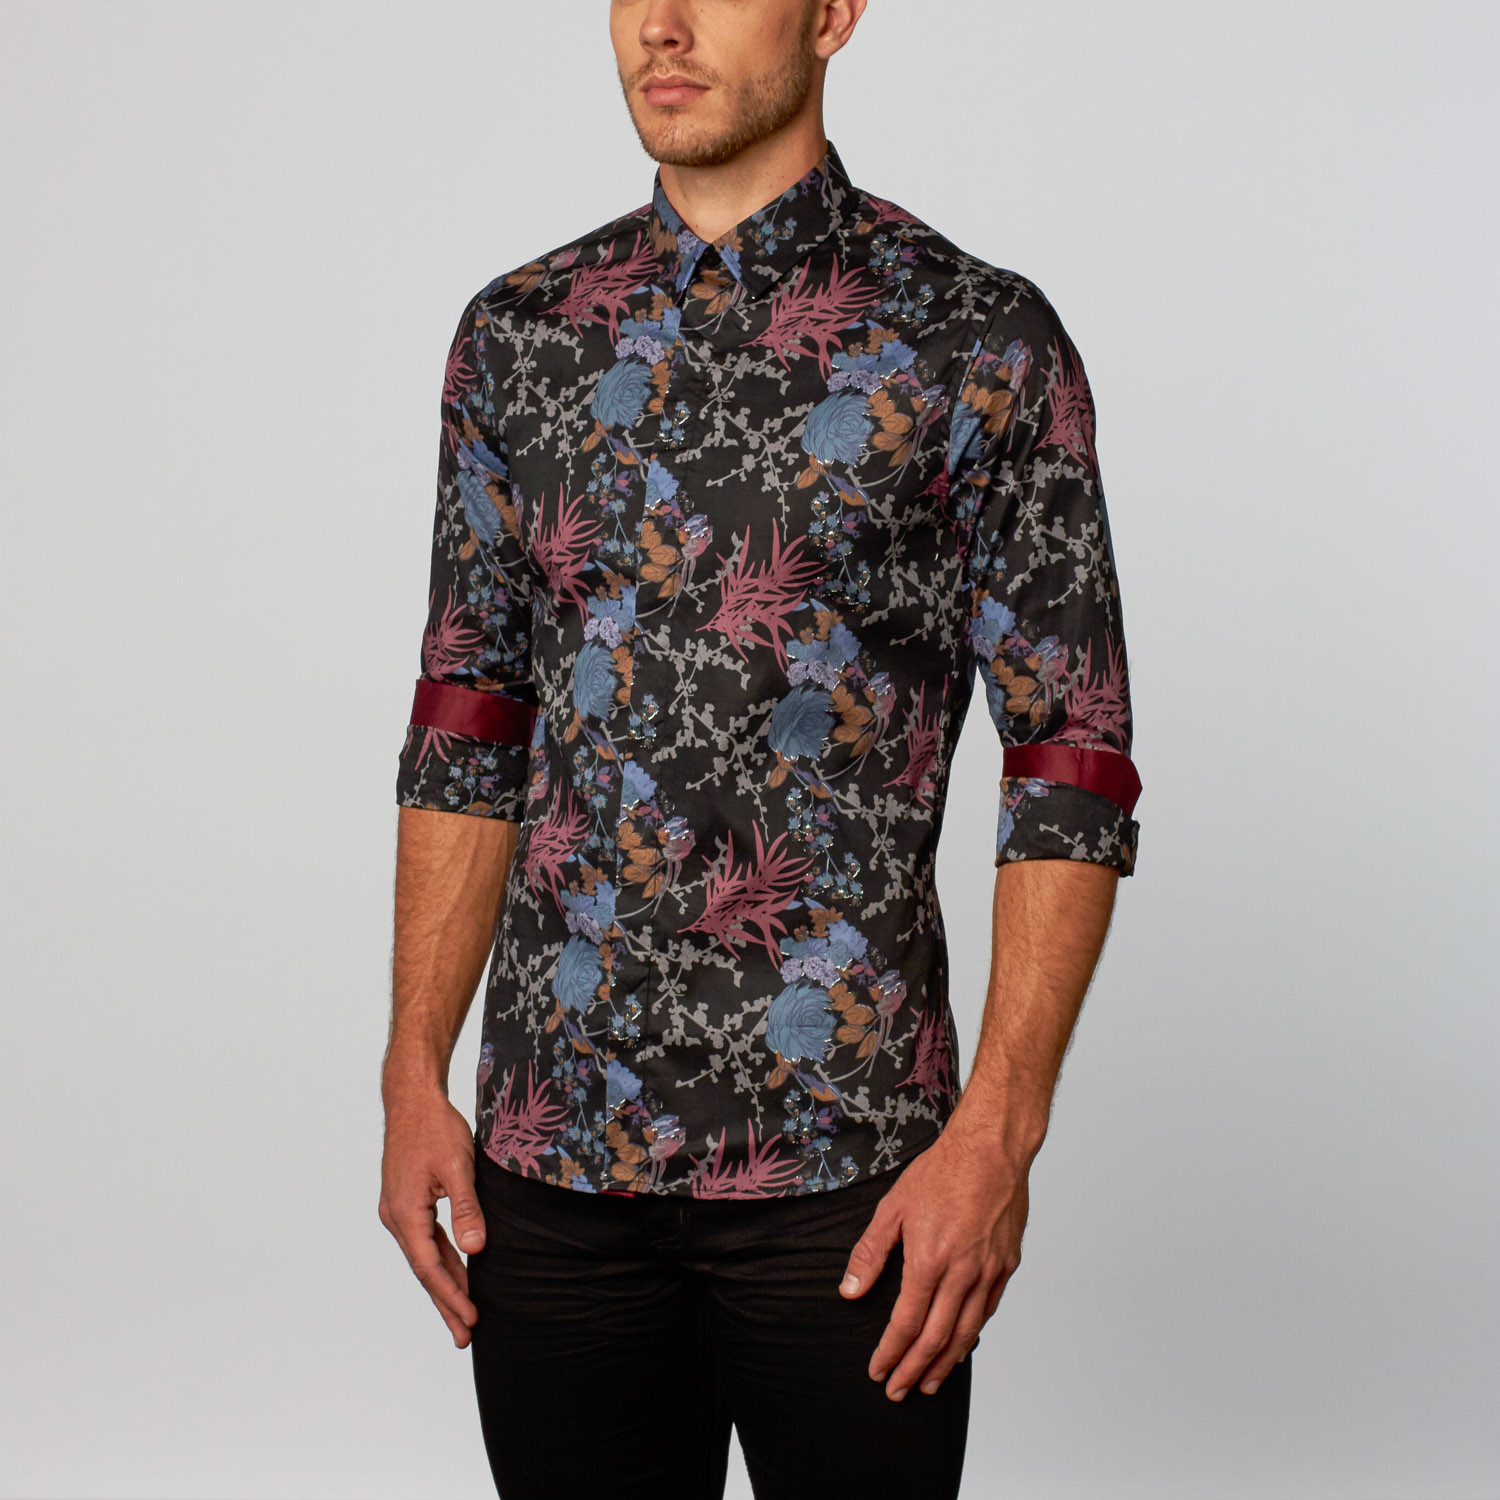 platini japanese garden button up shirt black s